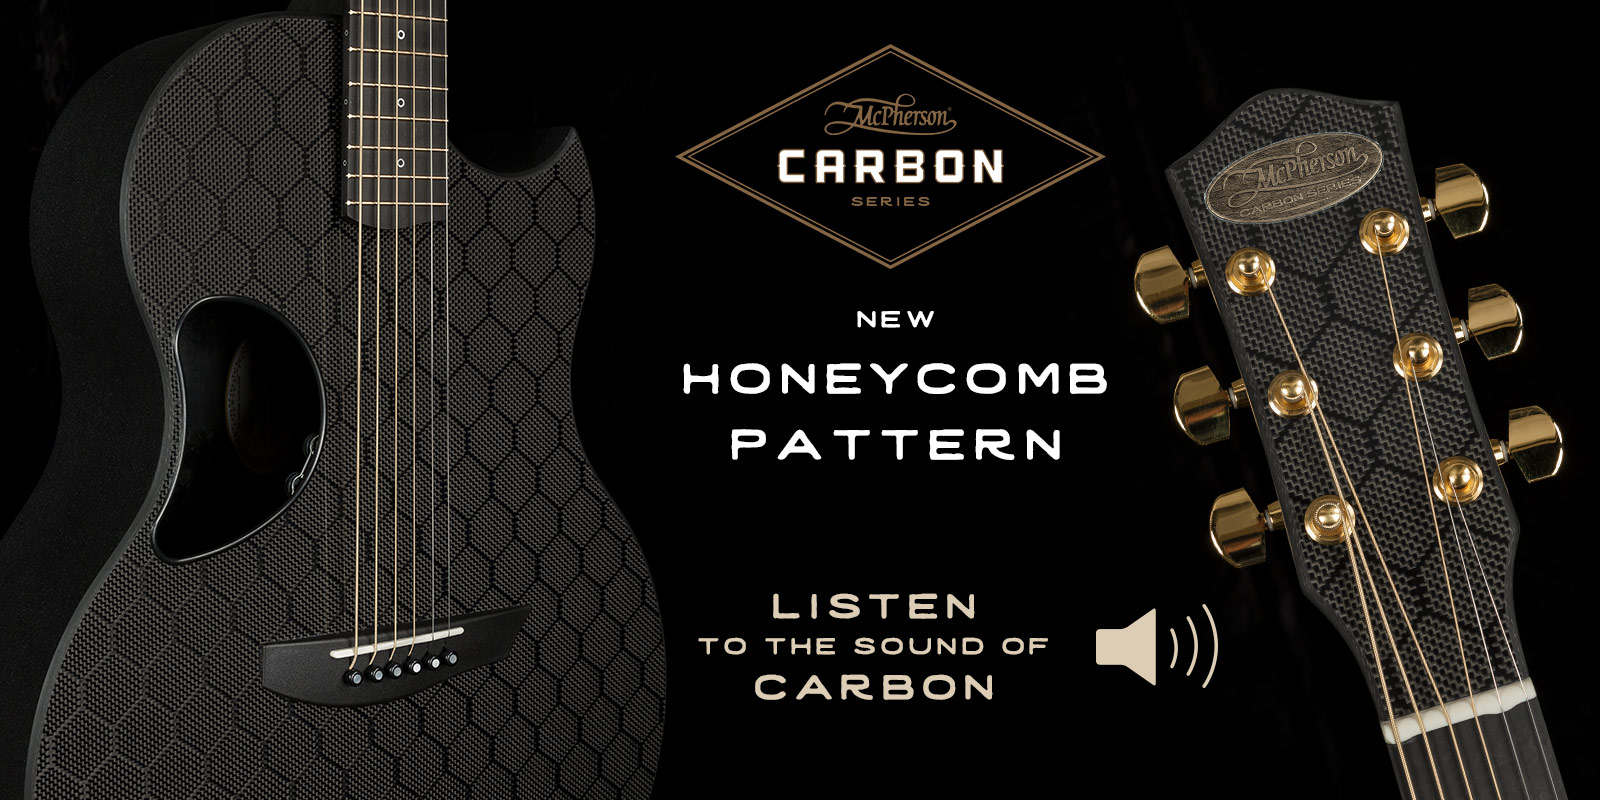 New carbon Honeycomb pattern